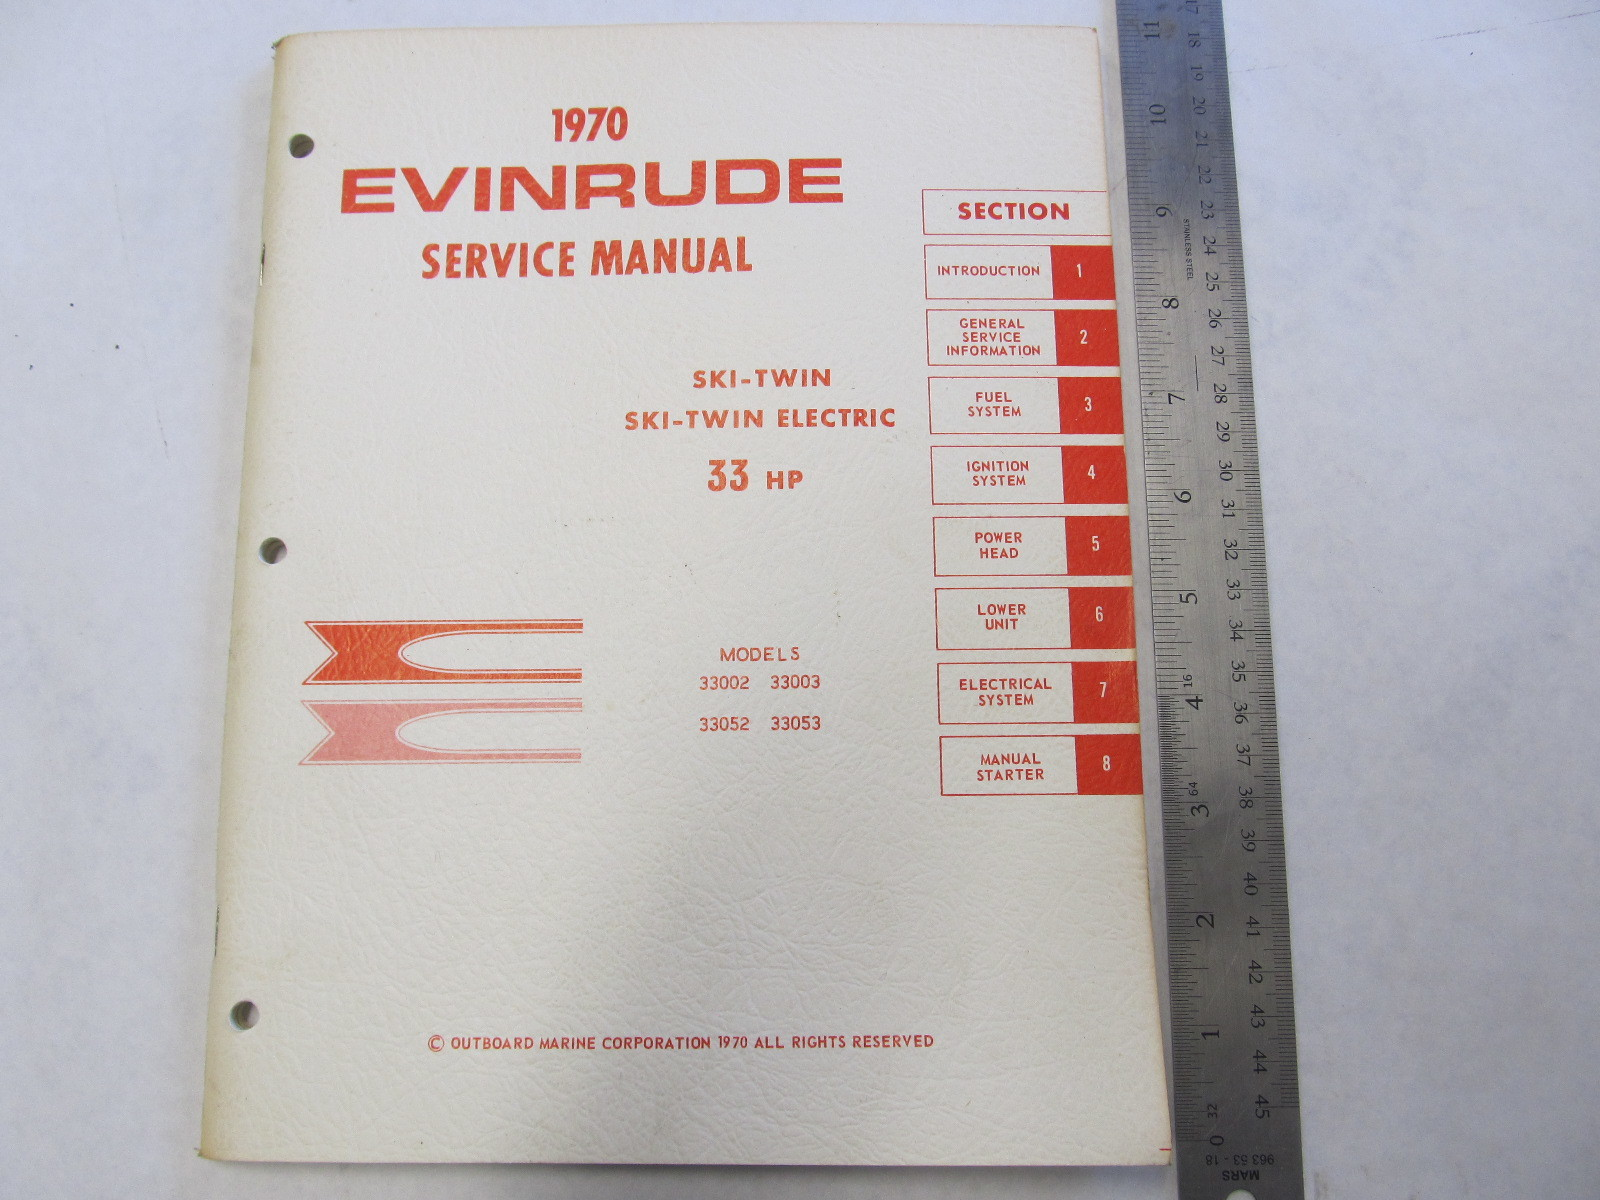 1970 Evinrude Outboard Service Manual 33 HP Ski-Twin / Ski-Twin Electric